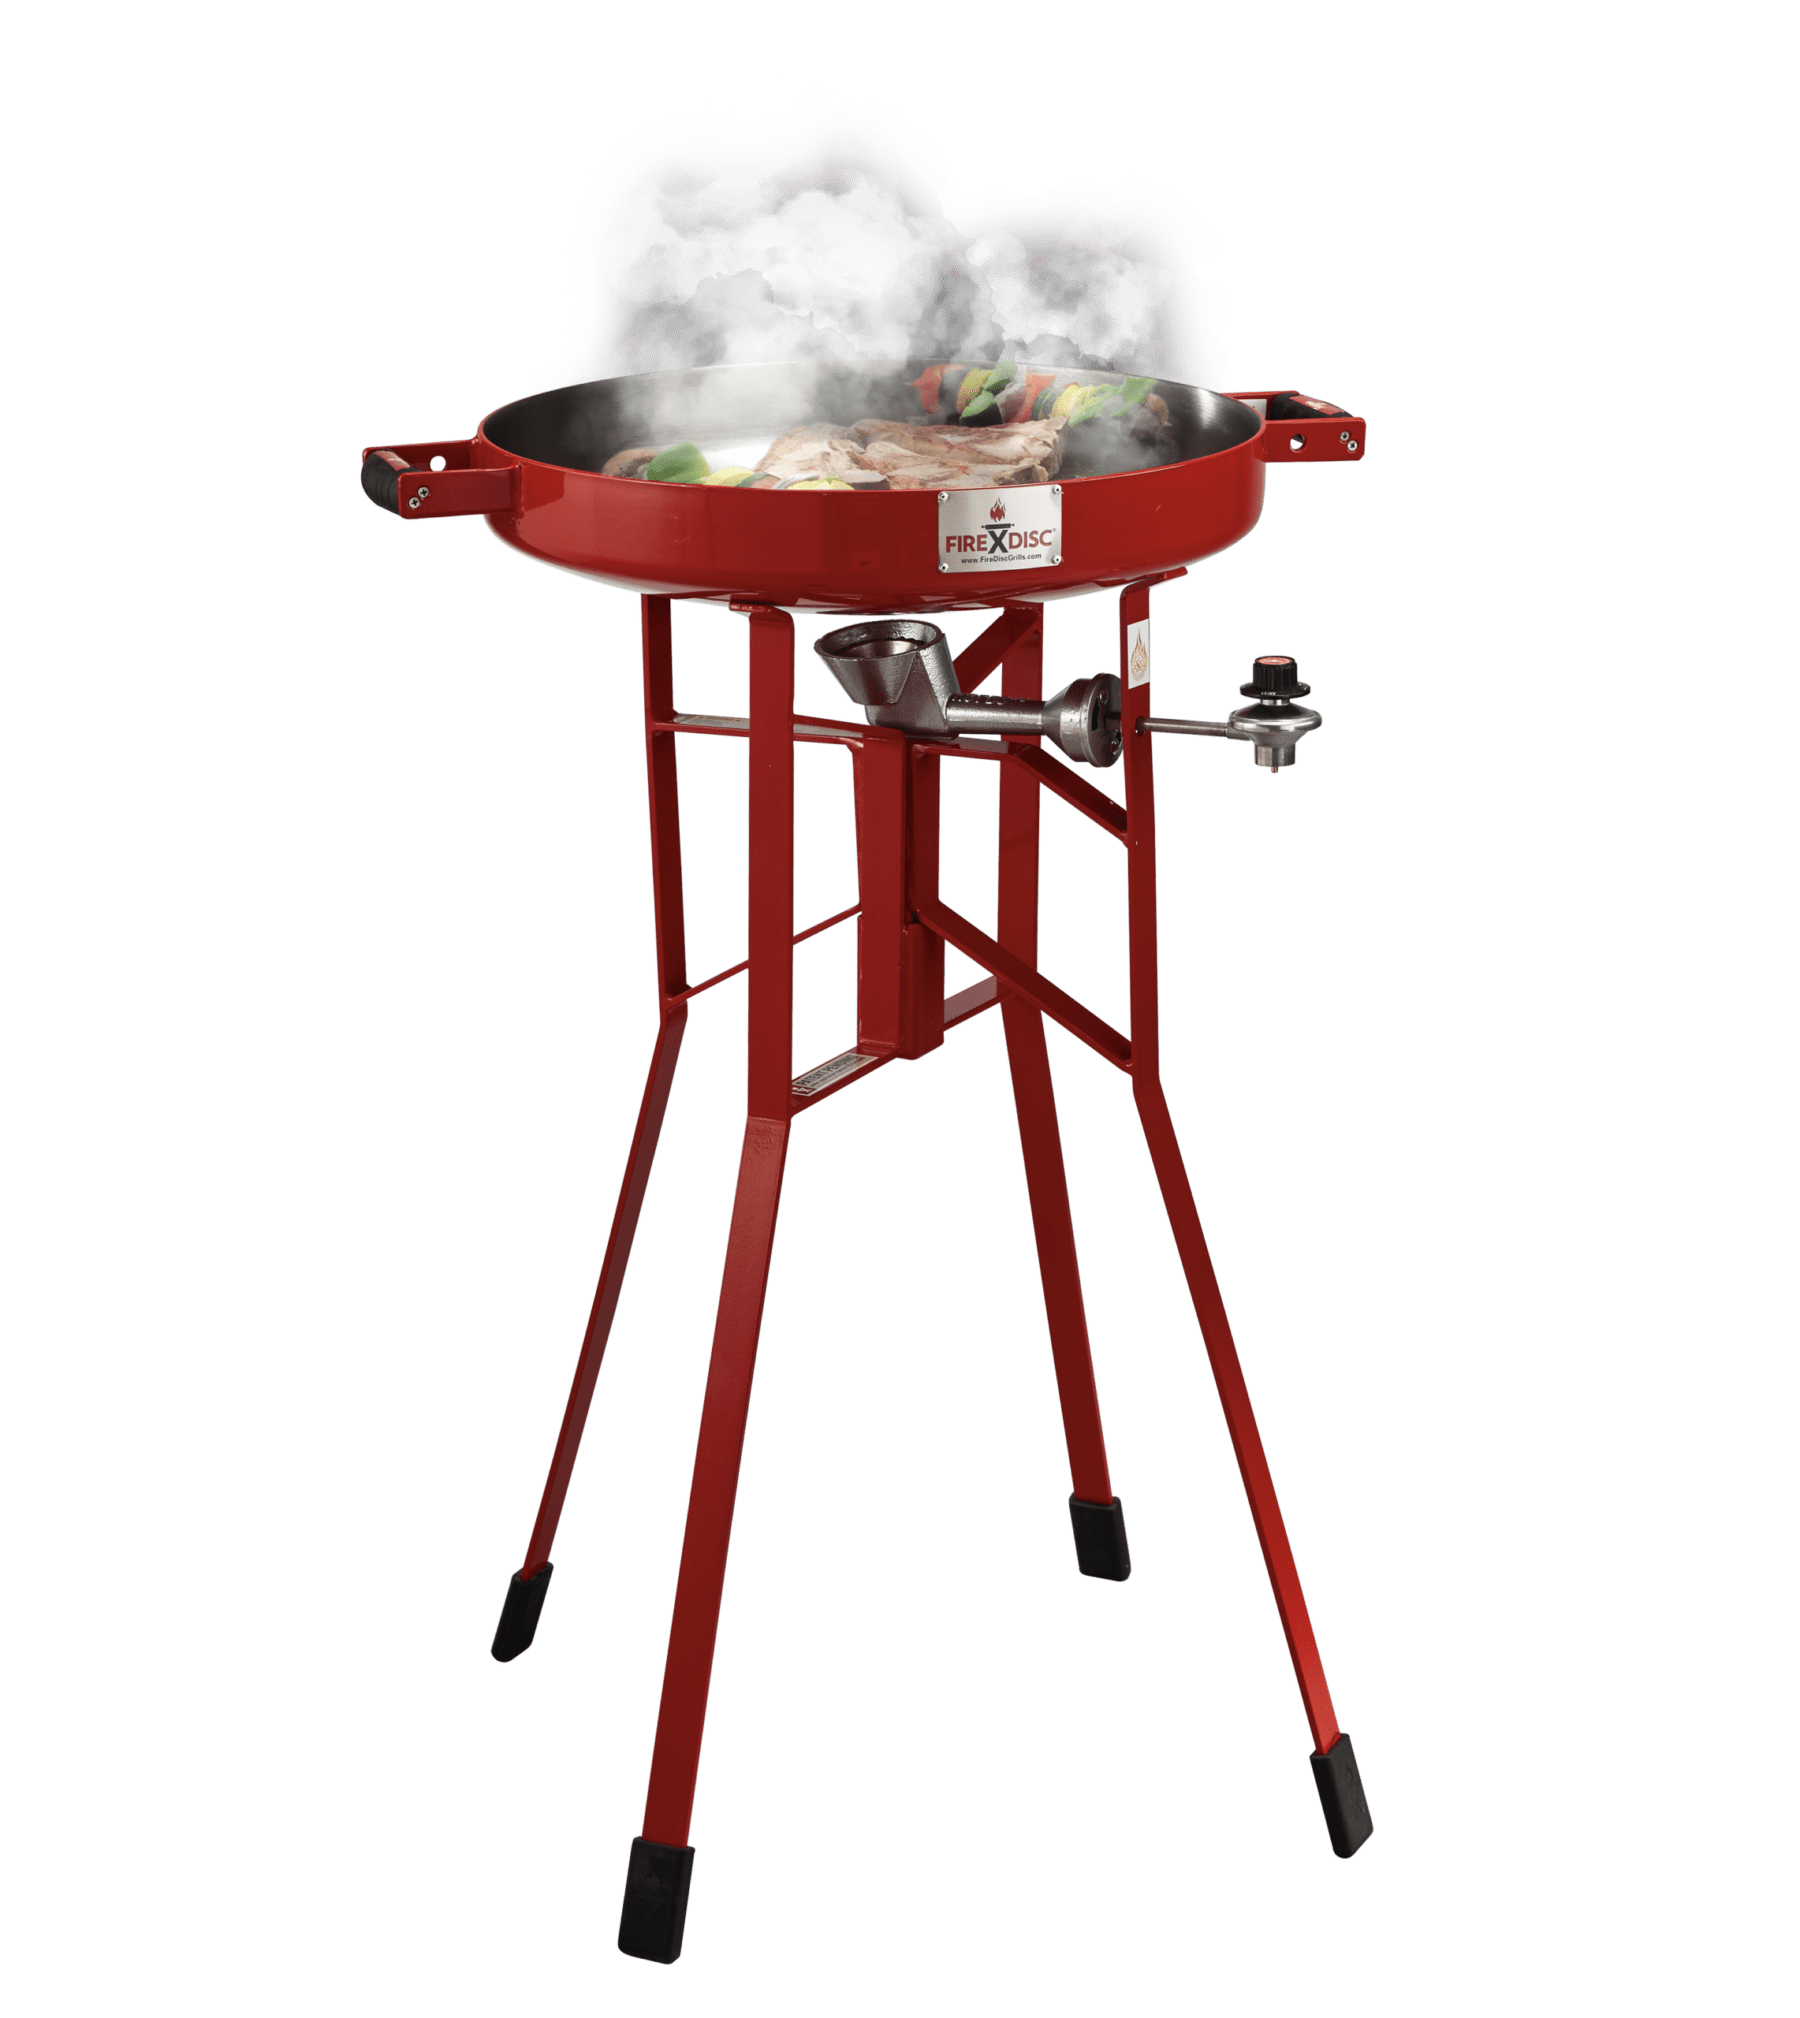 "THE ORIGINAL FIREDISC - 36"" TALL Portable Propane Cooker"